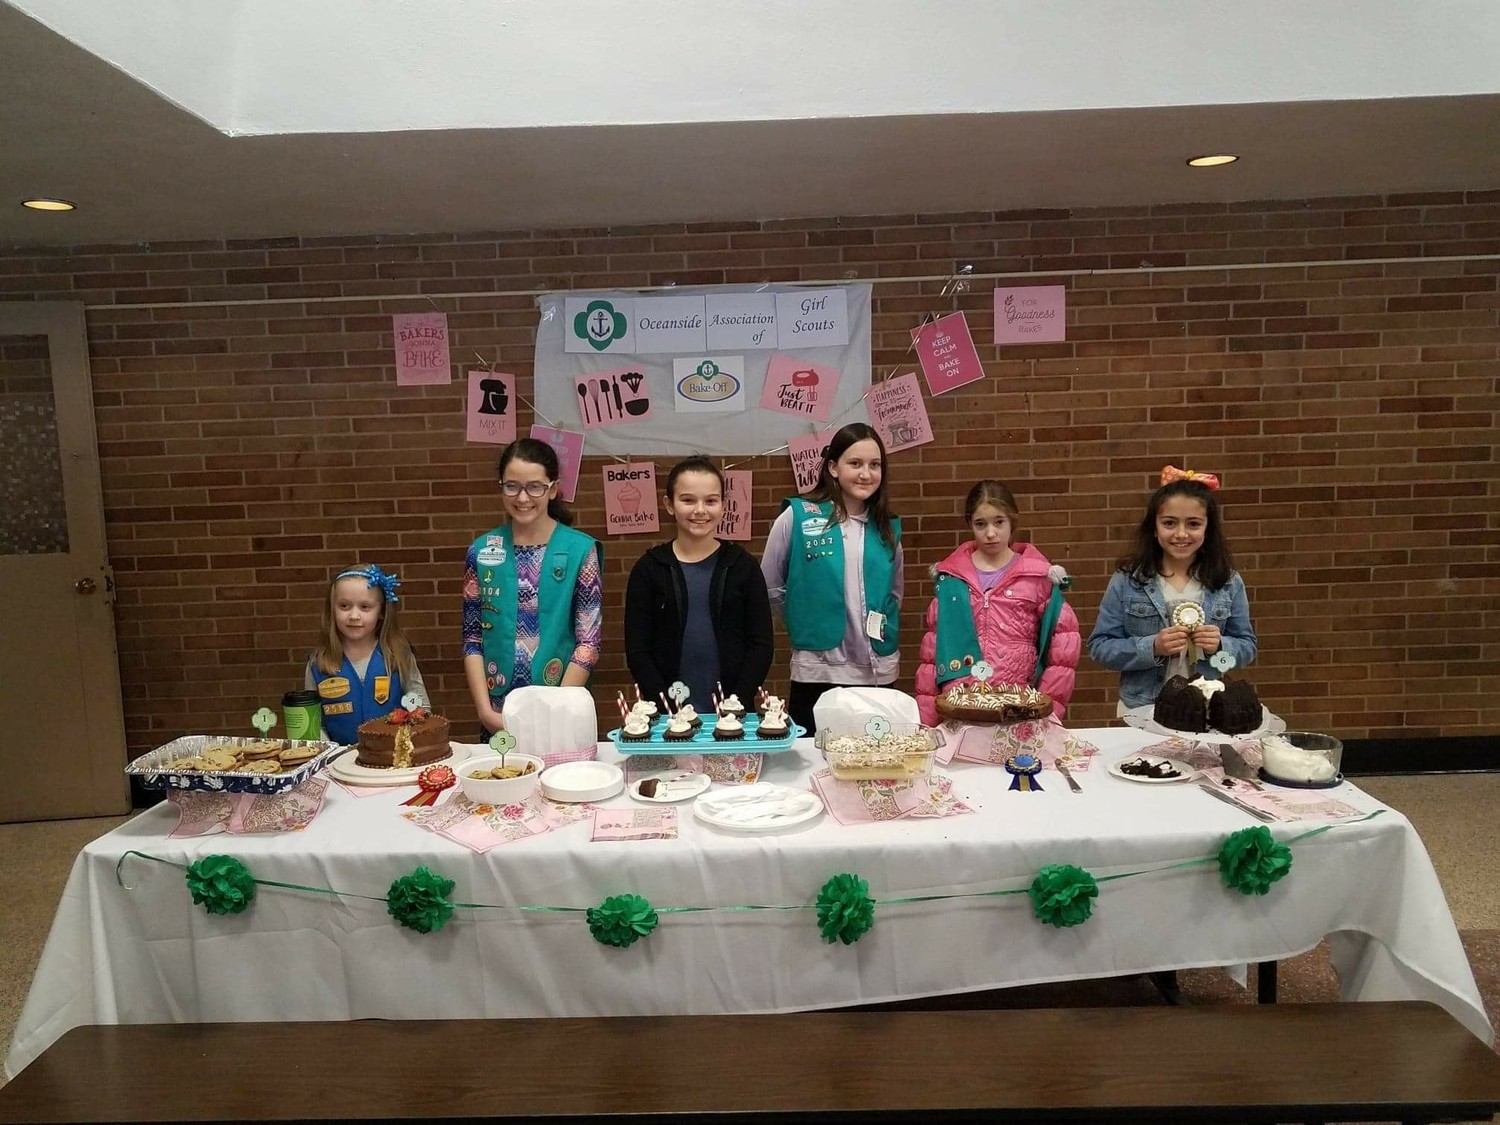 Oceanside Girl Scout members, Lilly Miller, left, Kaitlyn Rey, Riley Brasch, Kylee Griffin, Skylar Parker and Eliana de la Teja with their submitted cakes for the bake off.